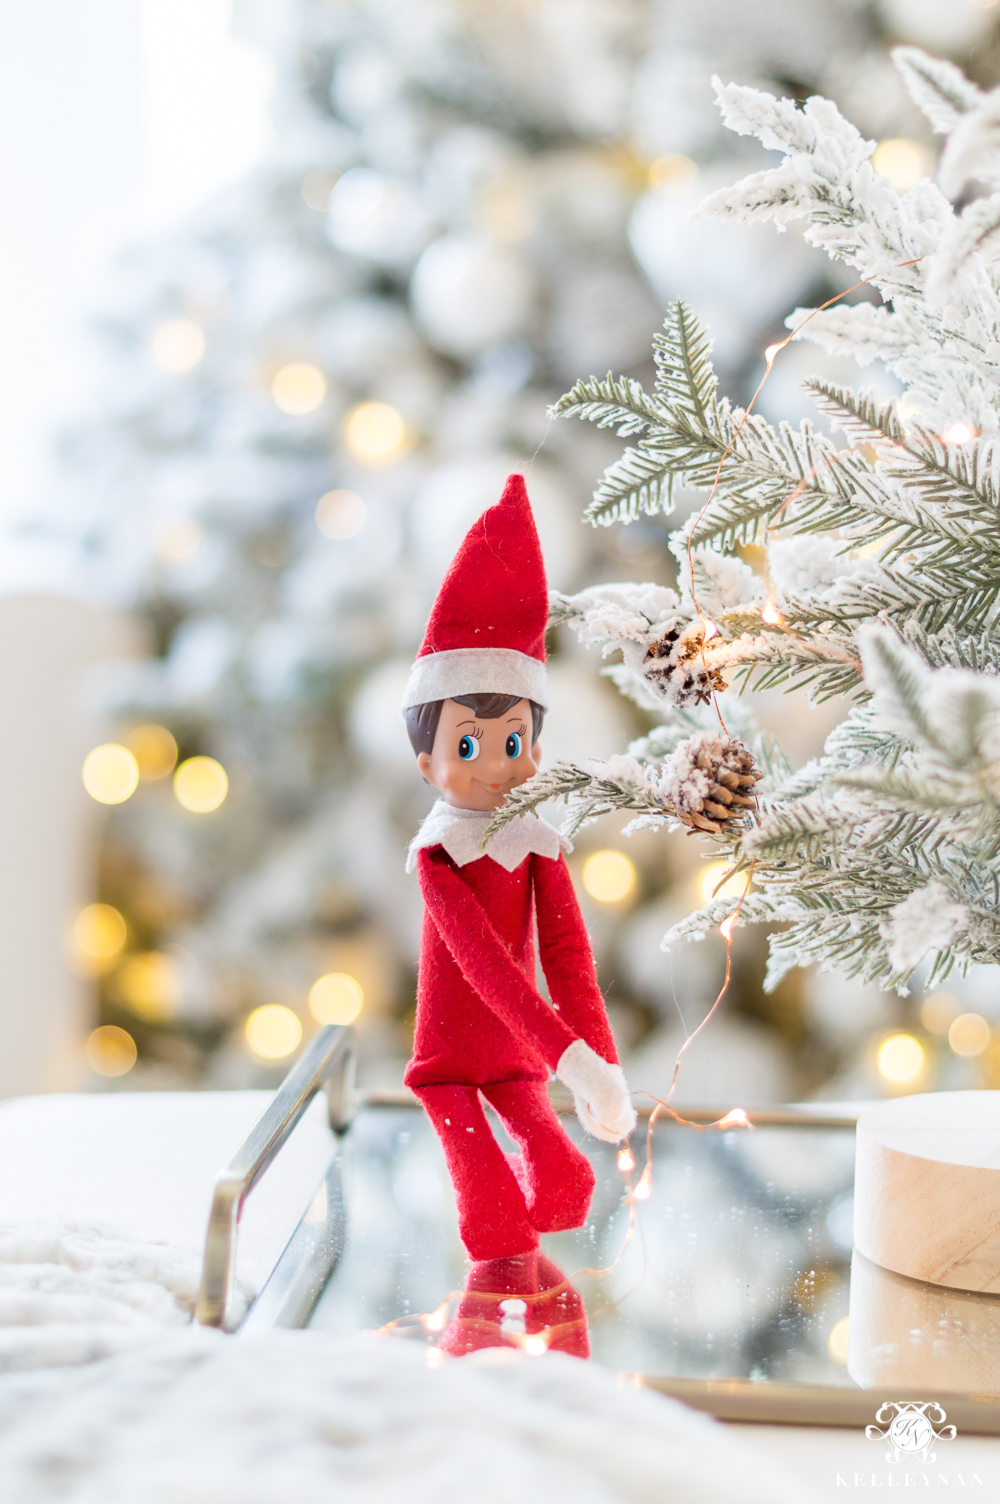 Unique Elf on the Shelf ideas for couples